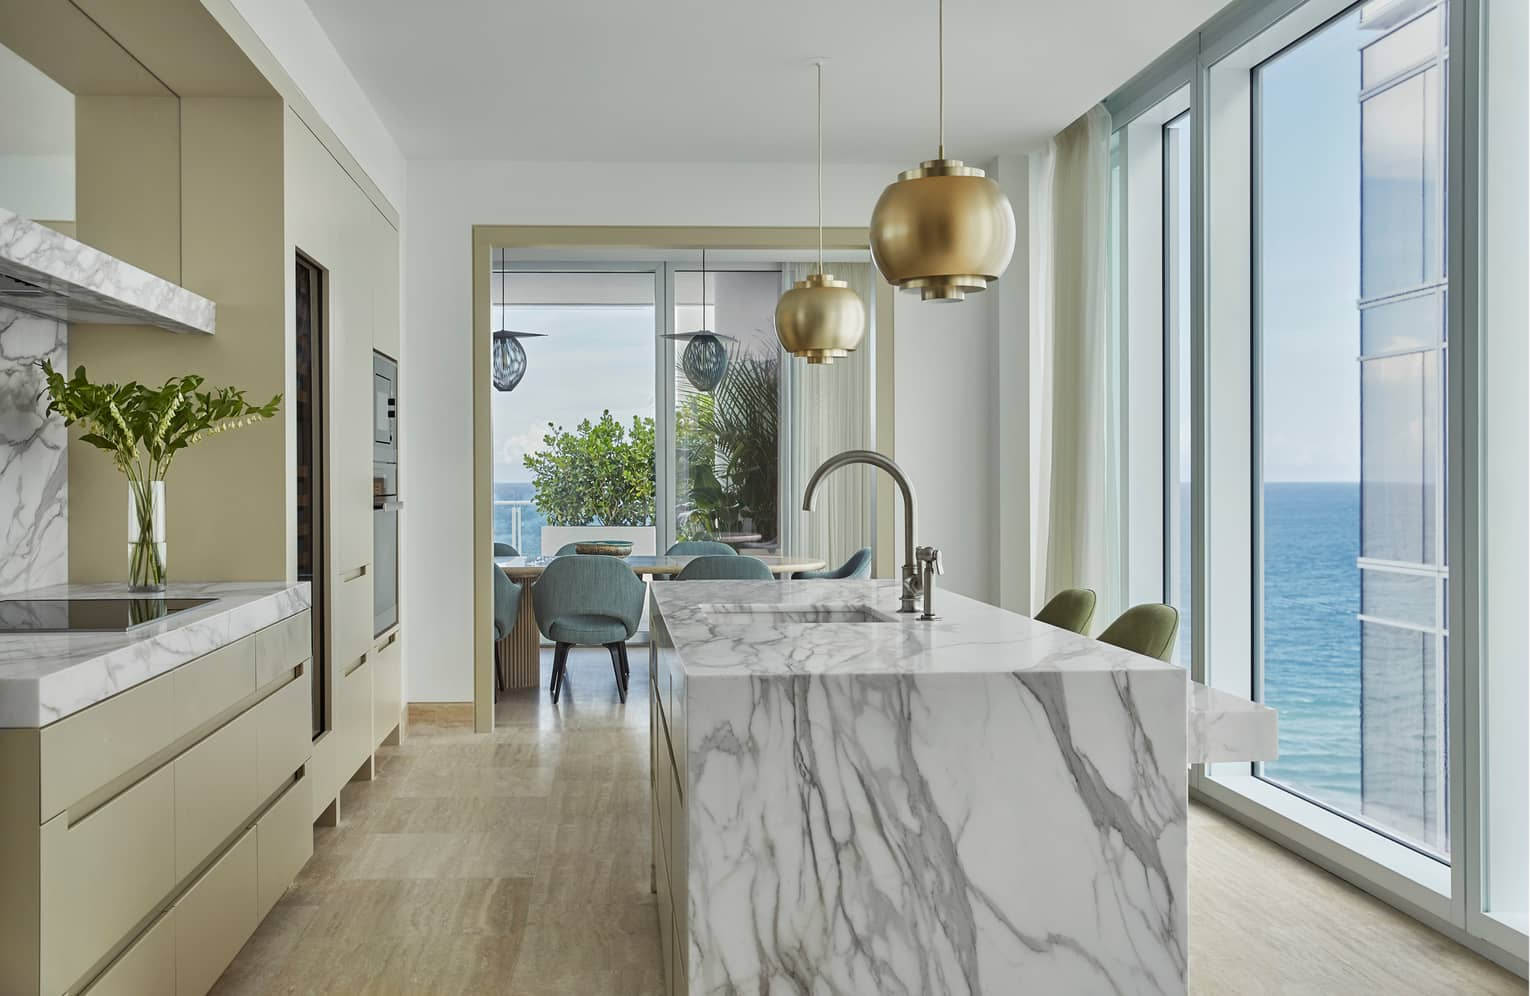 Retro-style brass lamps above grey marble kitchen island, glass wall with ocean views